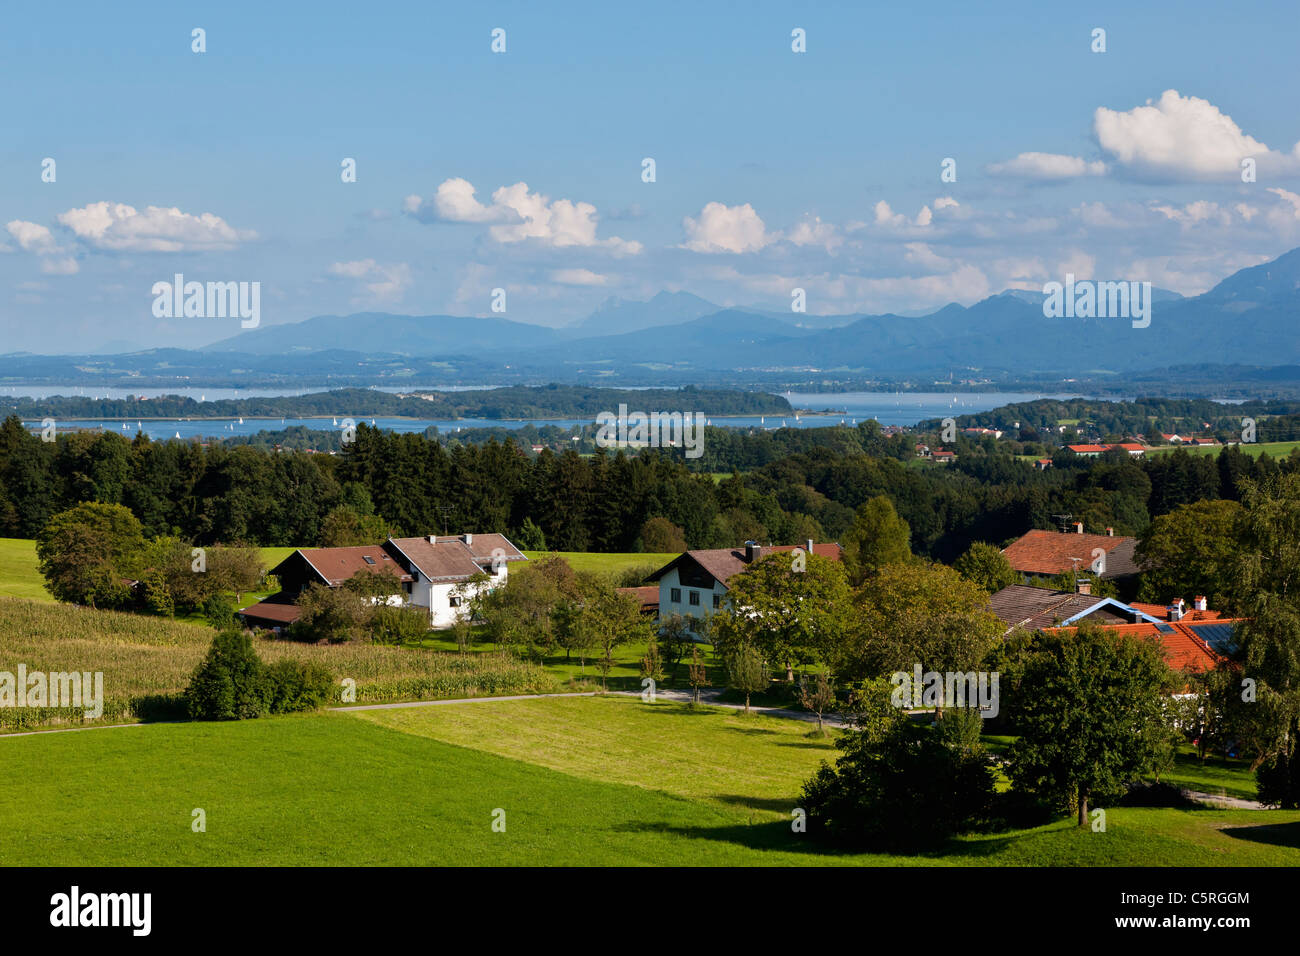 Germany, Bavaria, Chiemgau Alps, Herrenchiemsee, Chiemsee, View of village with island and freshwater lake in background - Stock Image